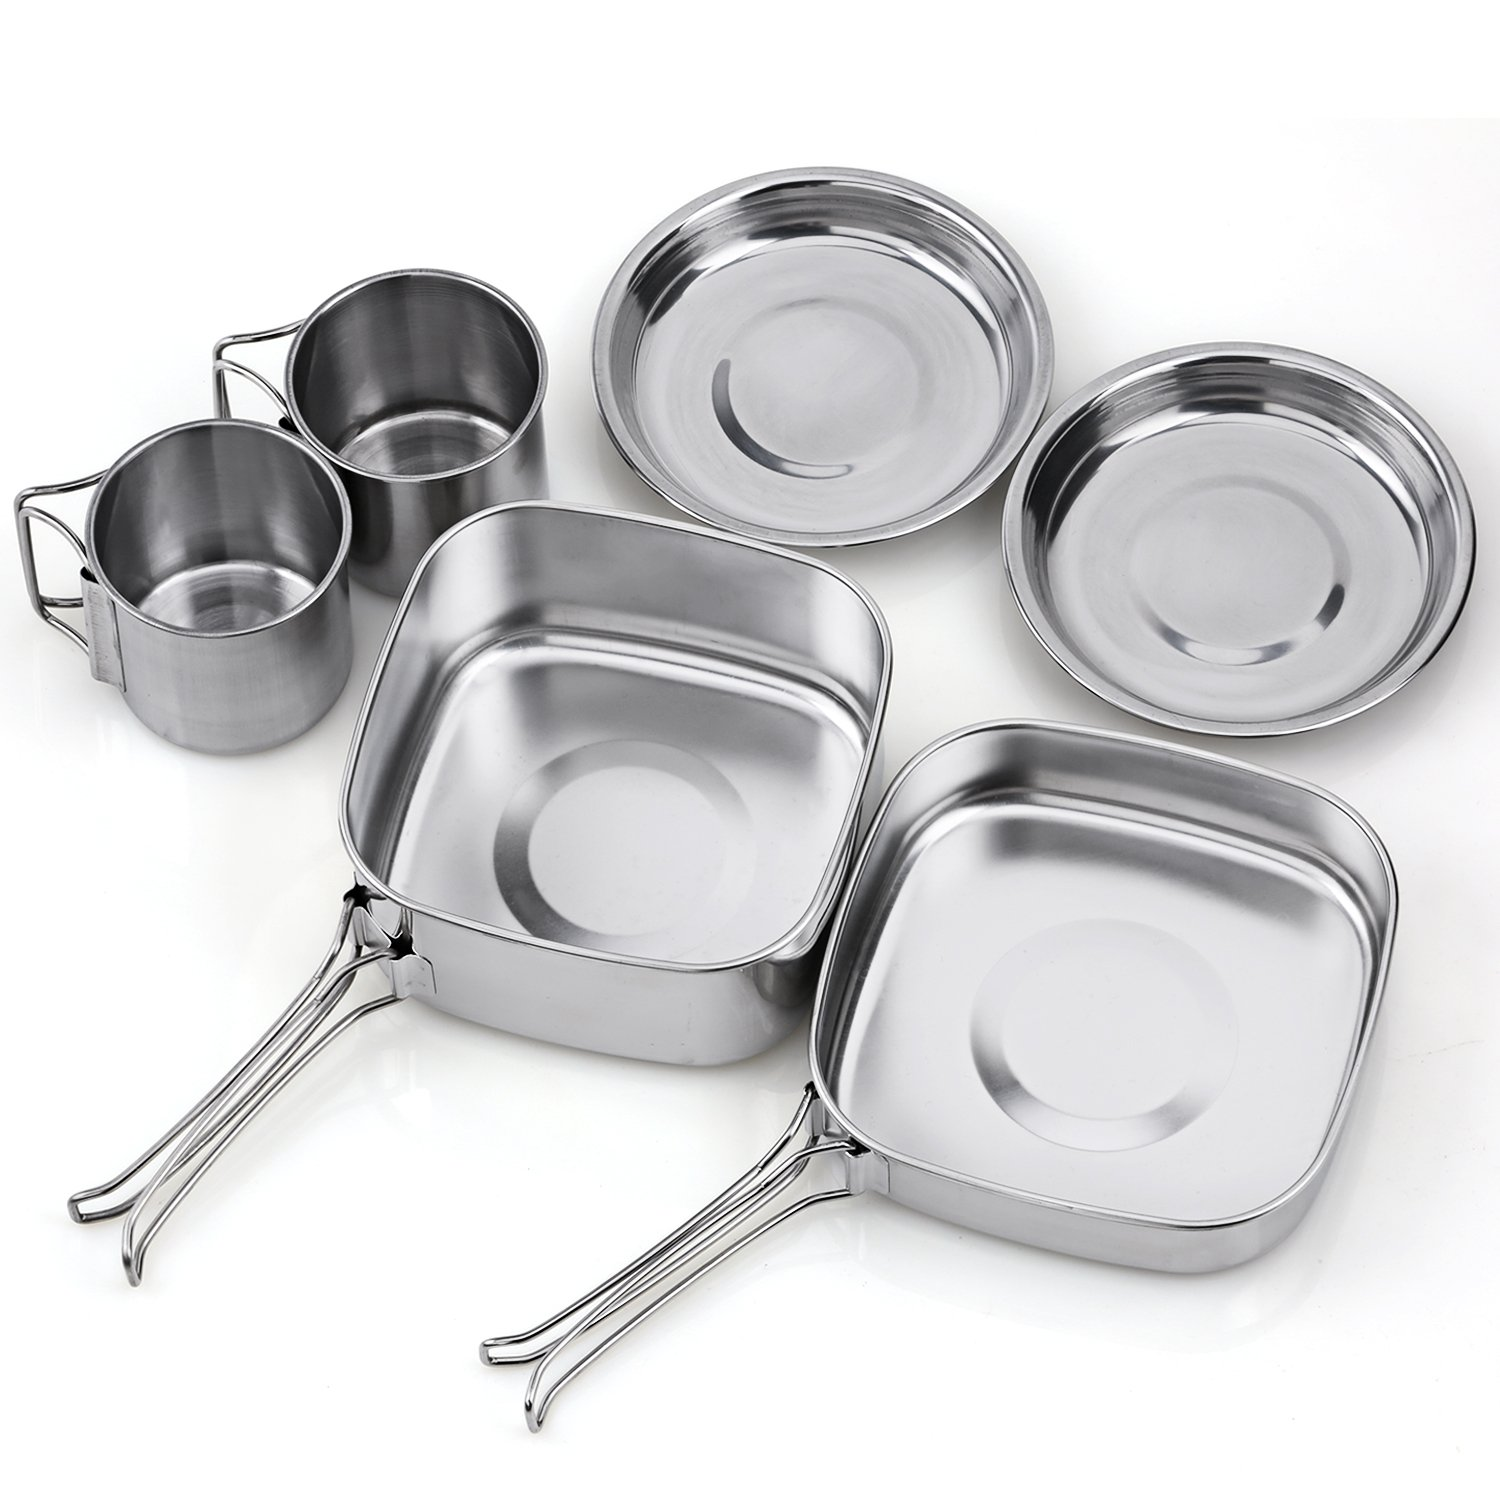 TAFOND Backpacking Camping Cookware Picnic Stainless Steel Cooking Cook Set for Hiking